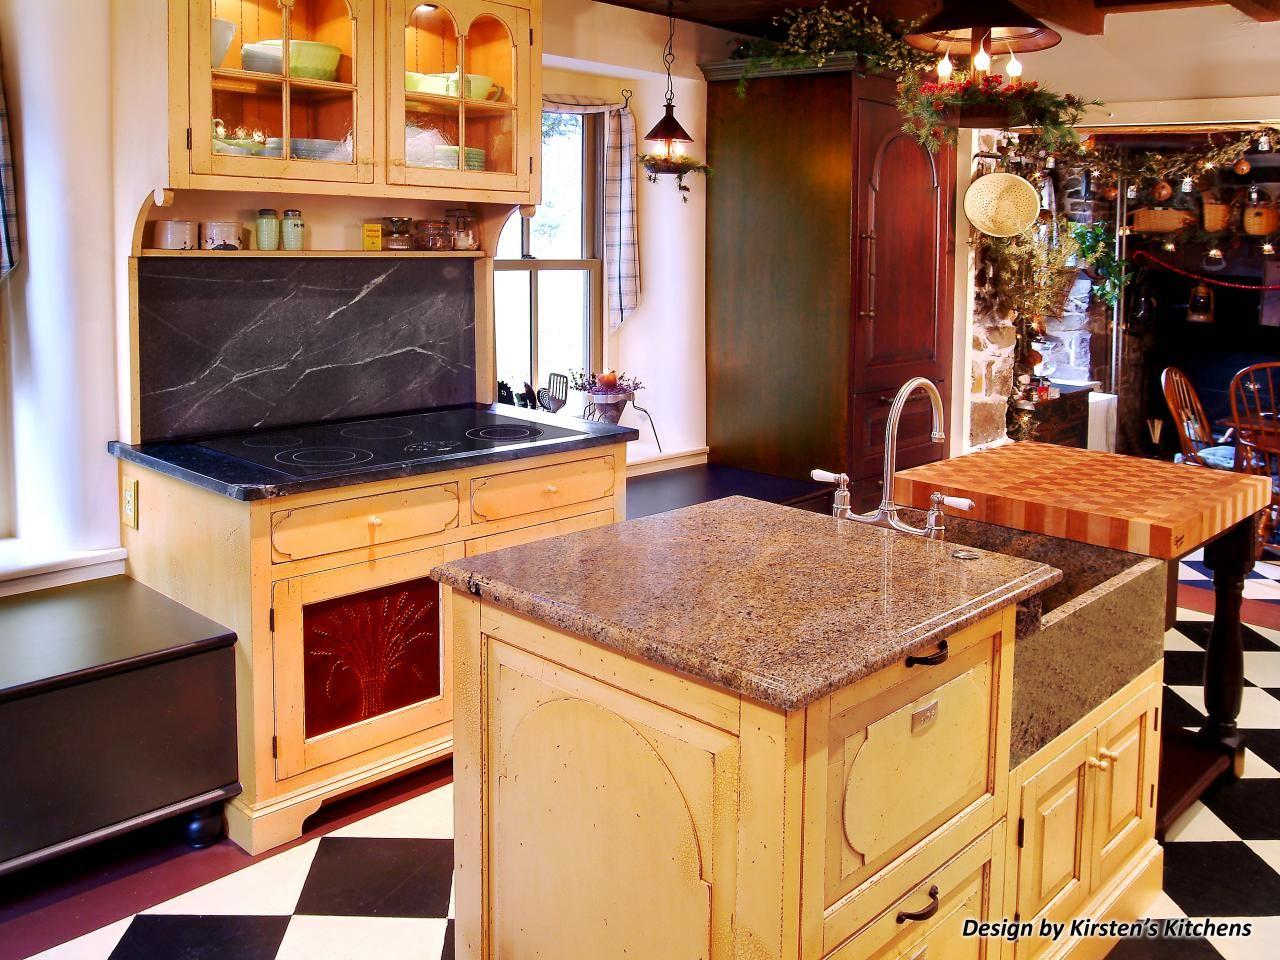 Mixing Kitchen Cabinet Styles And Finishes Kitchen Cabinet Styles Diy Kitchen Countertops Kitchen Cabinet Colors